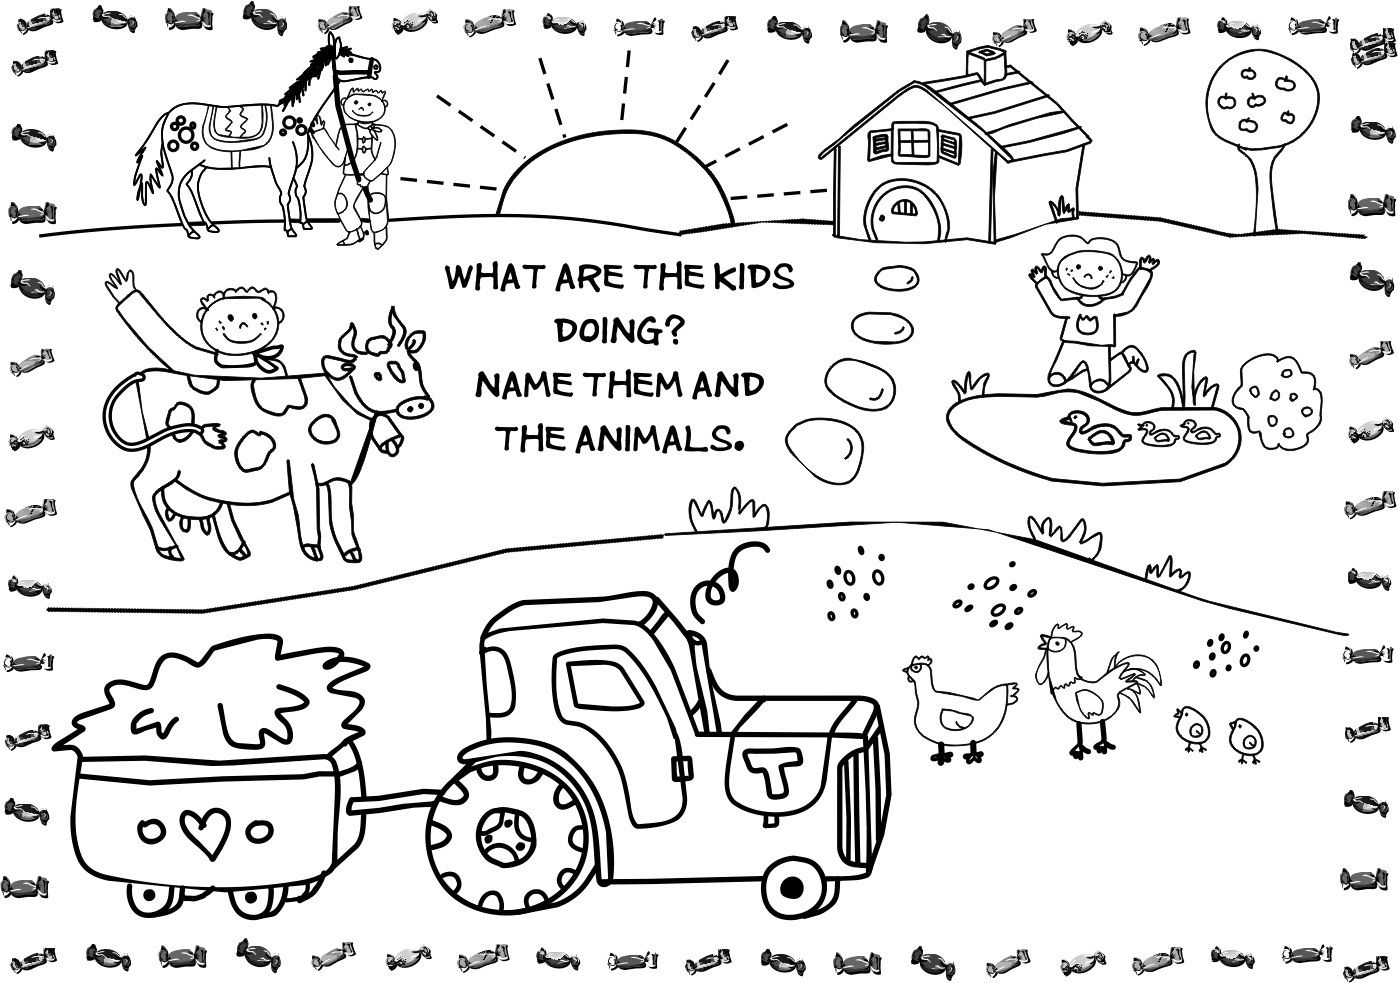 Free Printable Farm Animal Coloring Pages For Kids | Pinterest ...